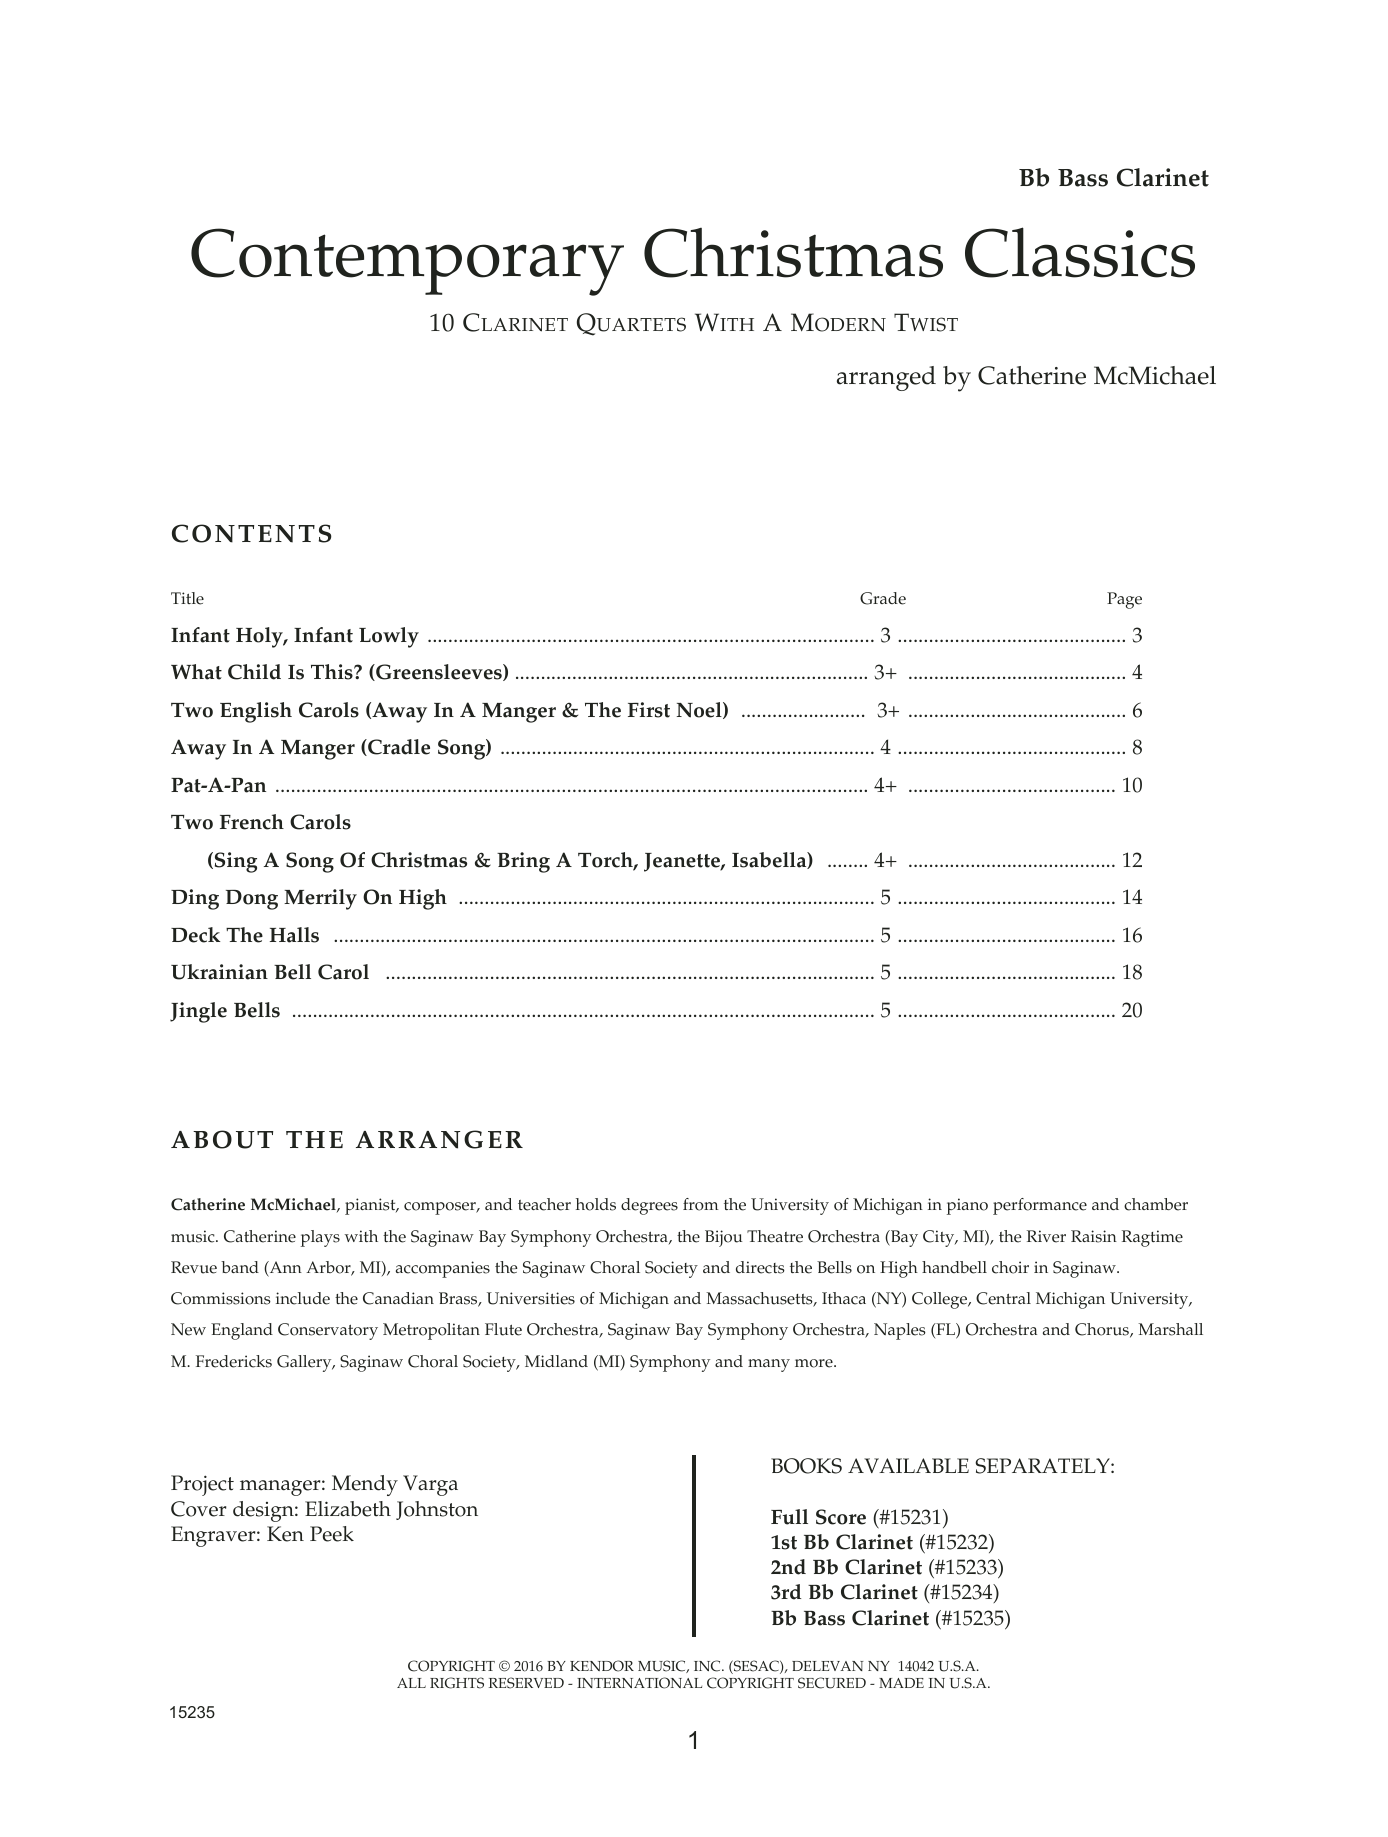 Catherine McMichael Contemporary Christmas Classics - Bb Bass Clarinet sheet music notes and chords